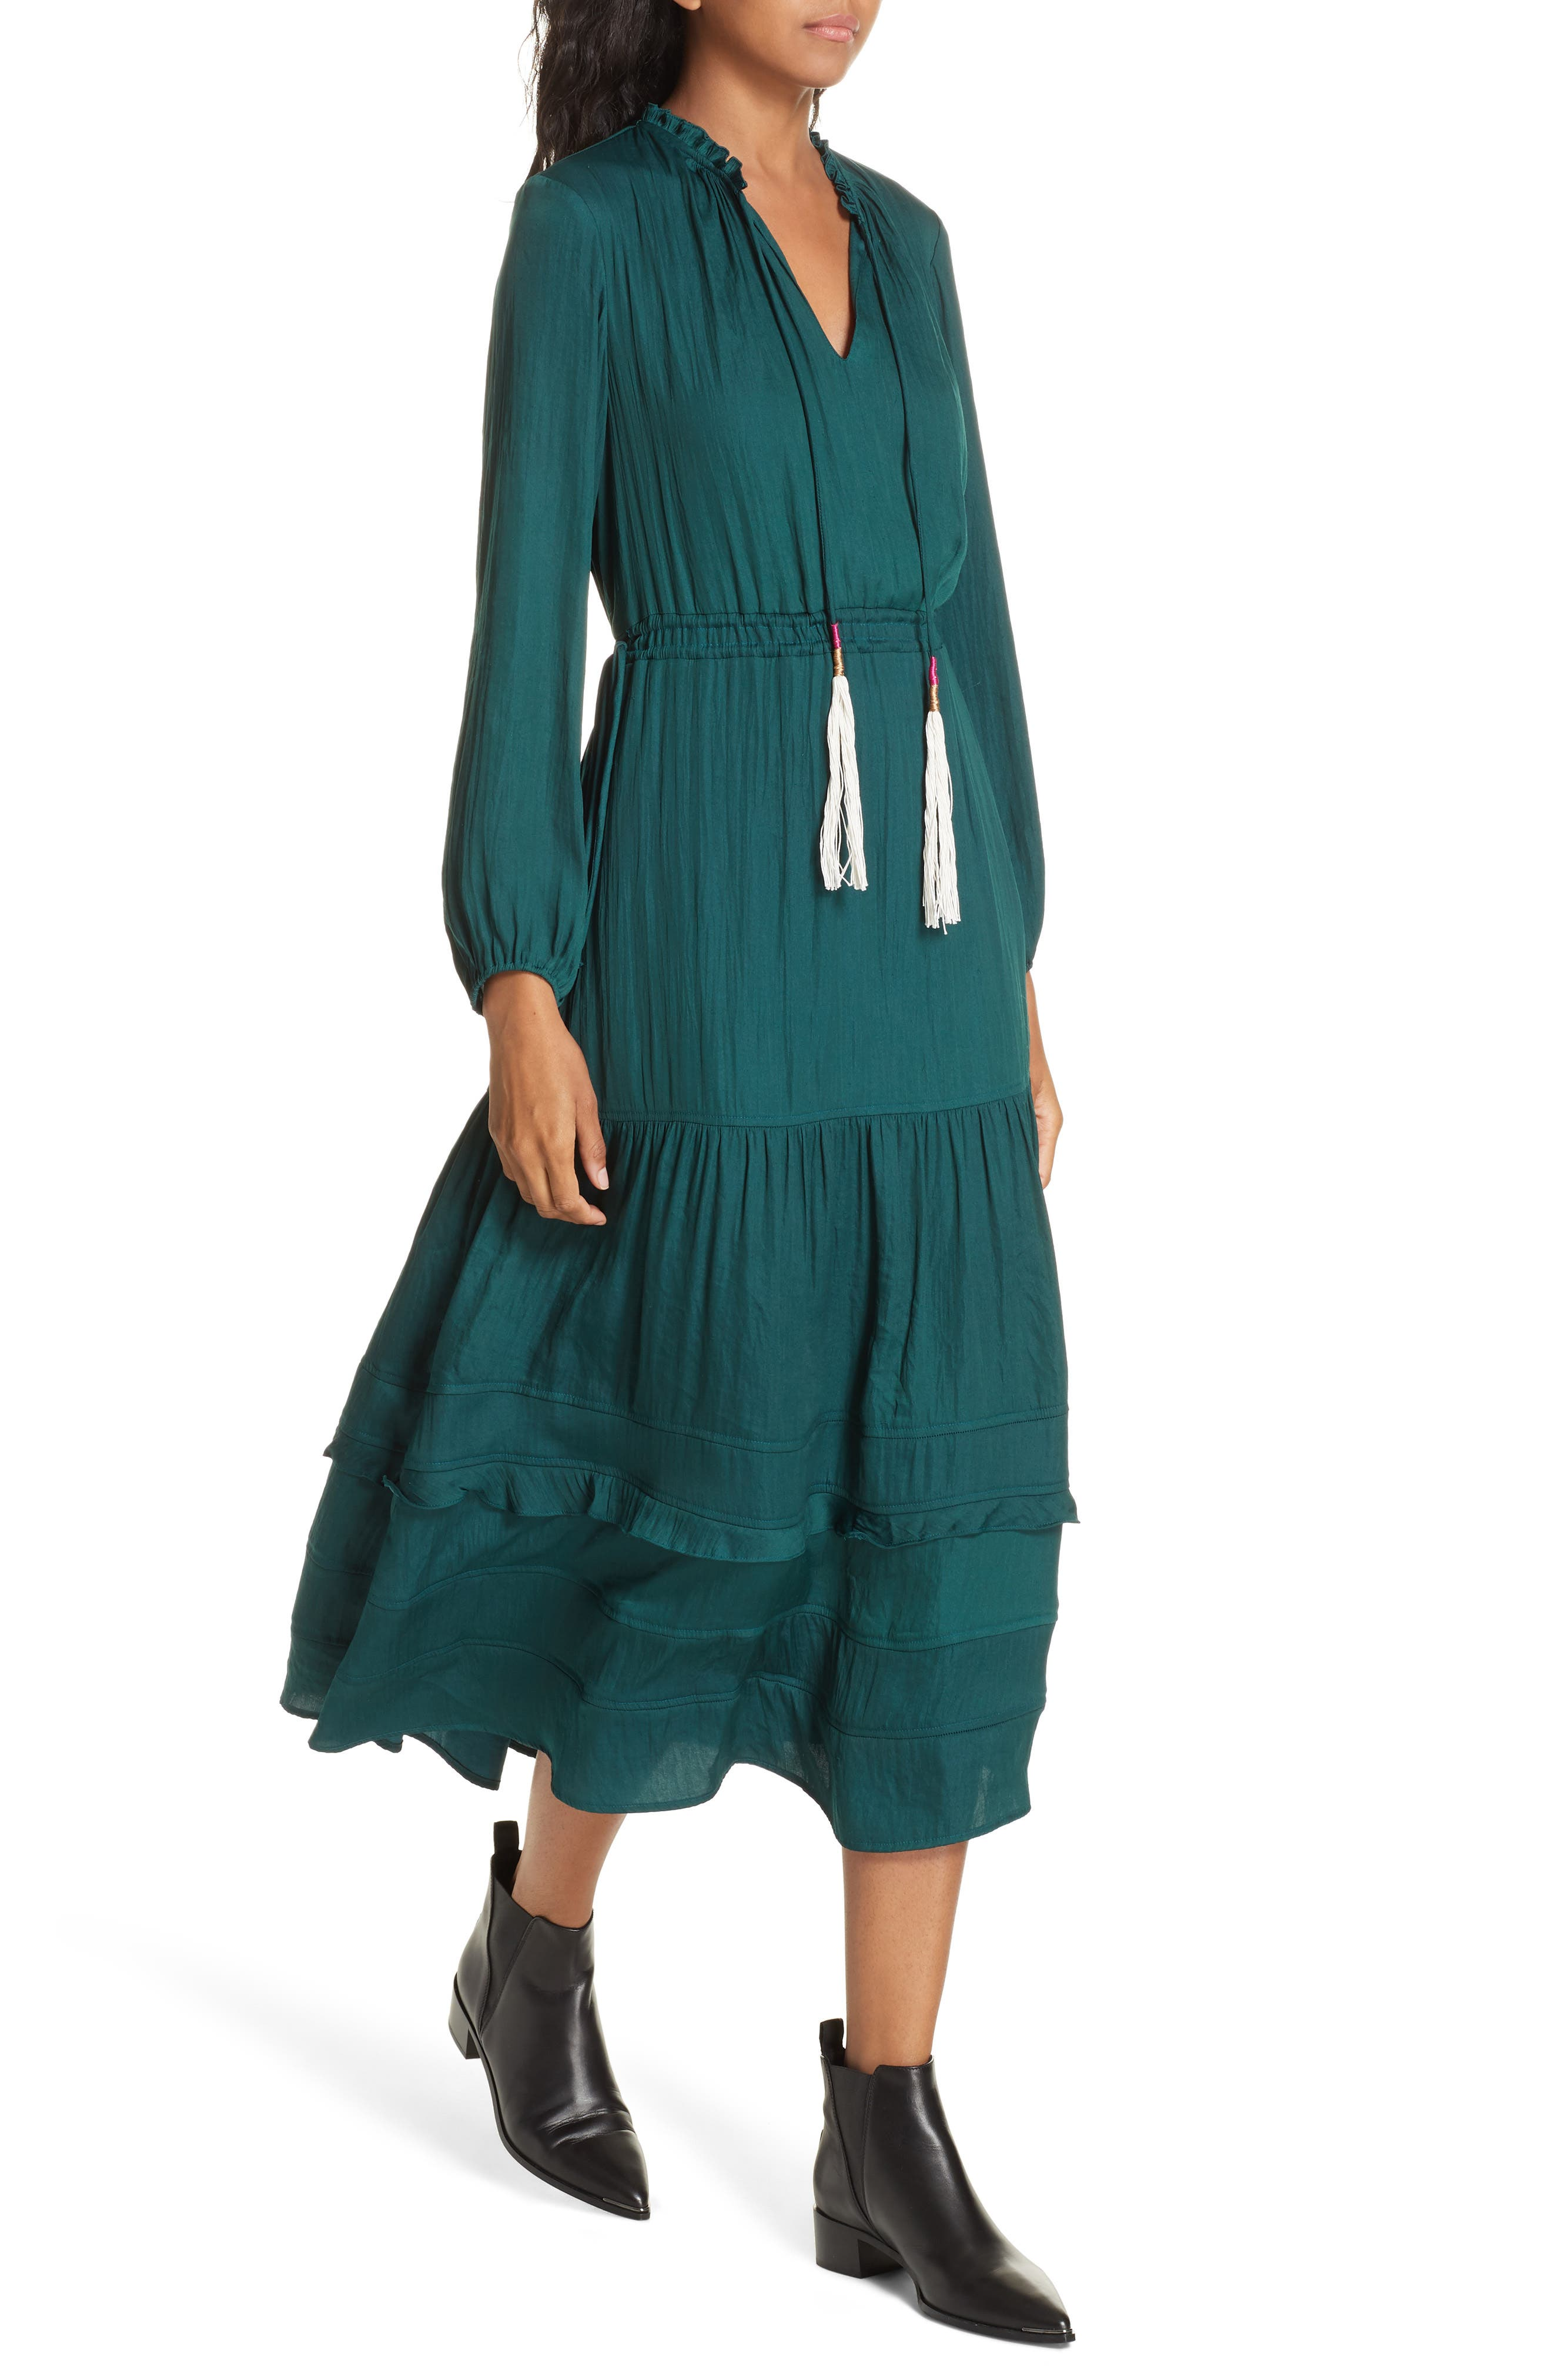 Tassel Tie Midi Dress,                             Alternate thumbnail 4, color,                             FOREST